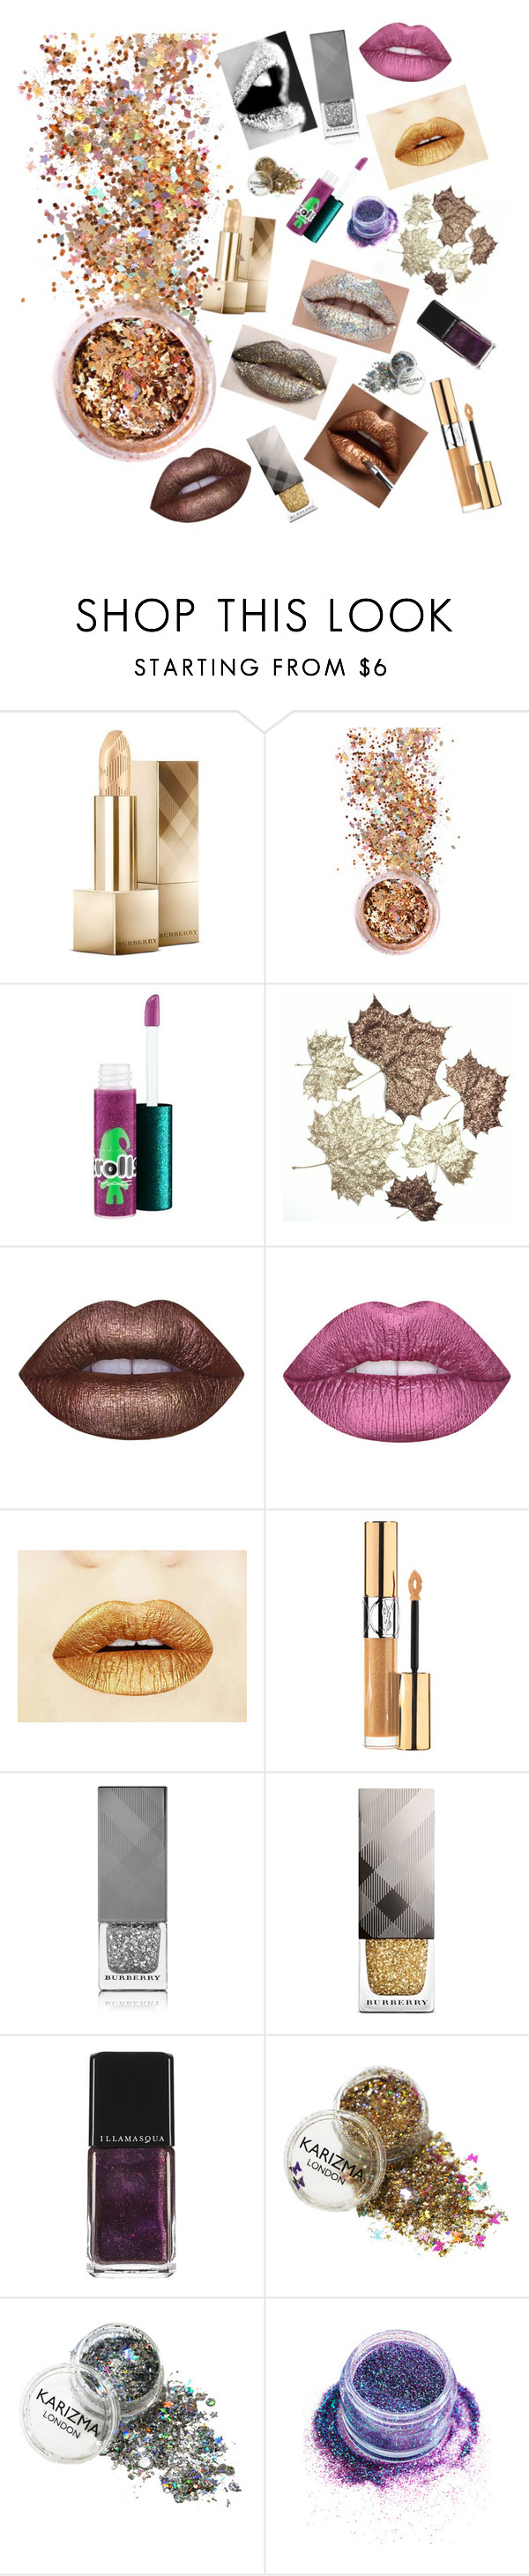 """""""Untitled #96"""" by guiseppe-zanotti ❤ liked on Polyvore featuring beauty, Burberry, In Your Dreams, MAC Cosmetics, Lime Crime, Yves Saint Laurent and Illamasqua"""